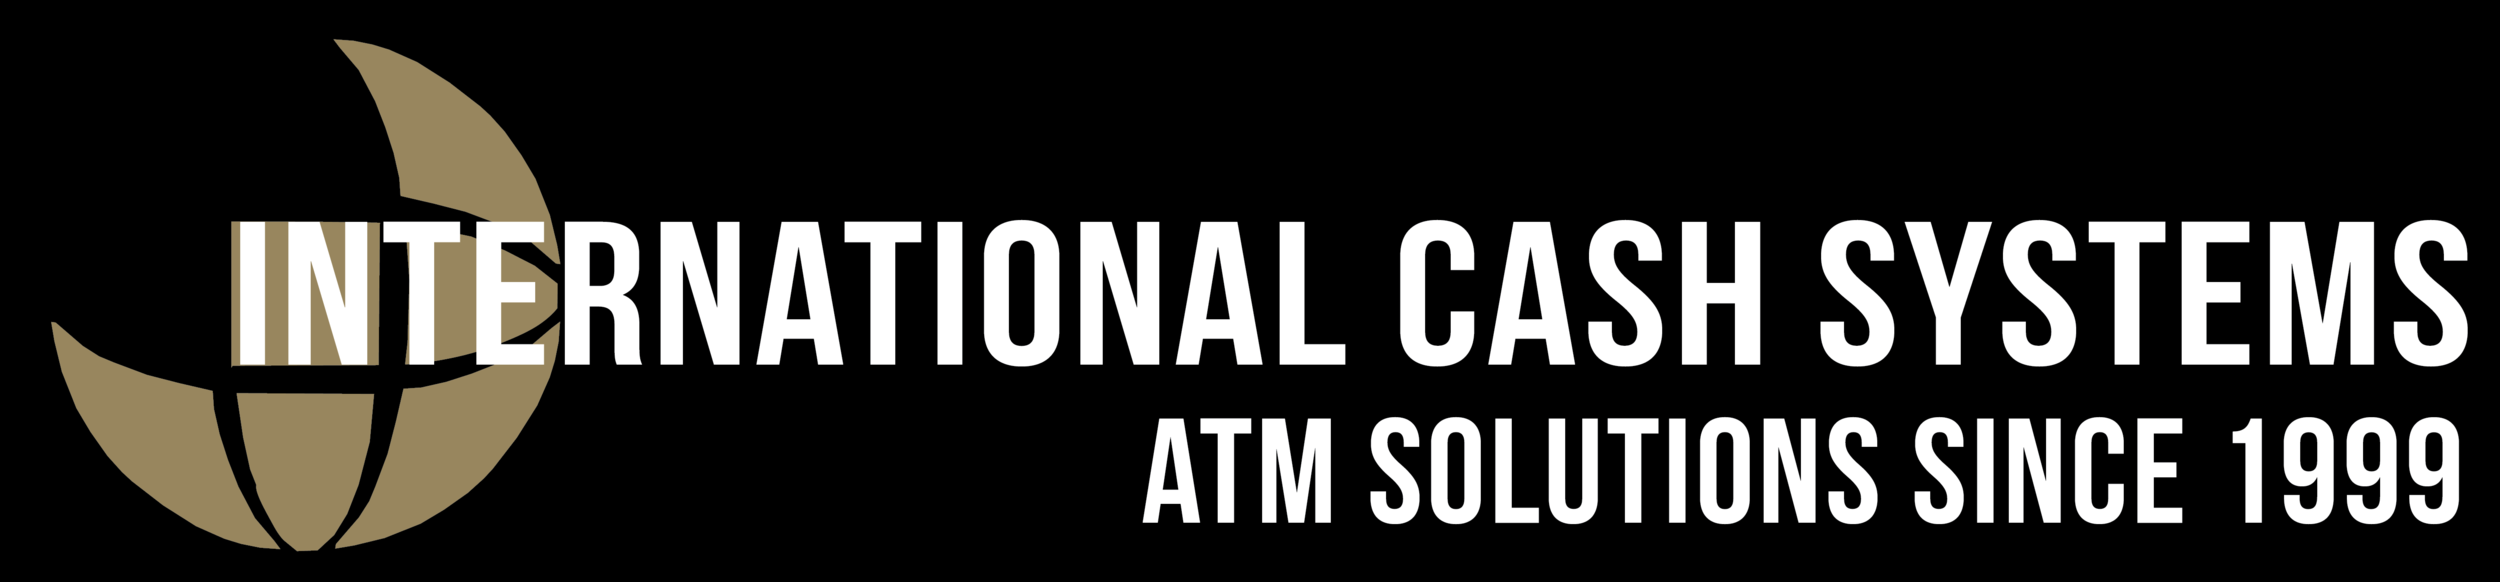 International Cash Systems Logo2.png